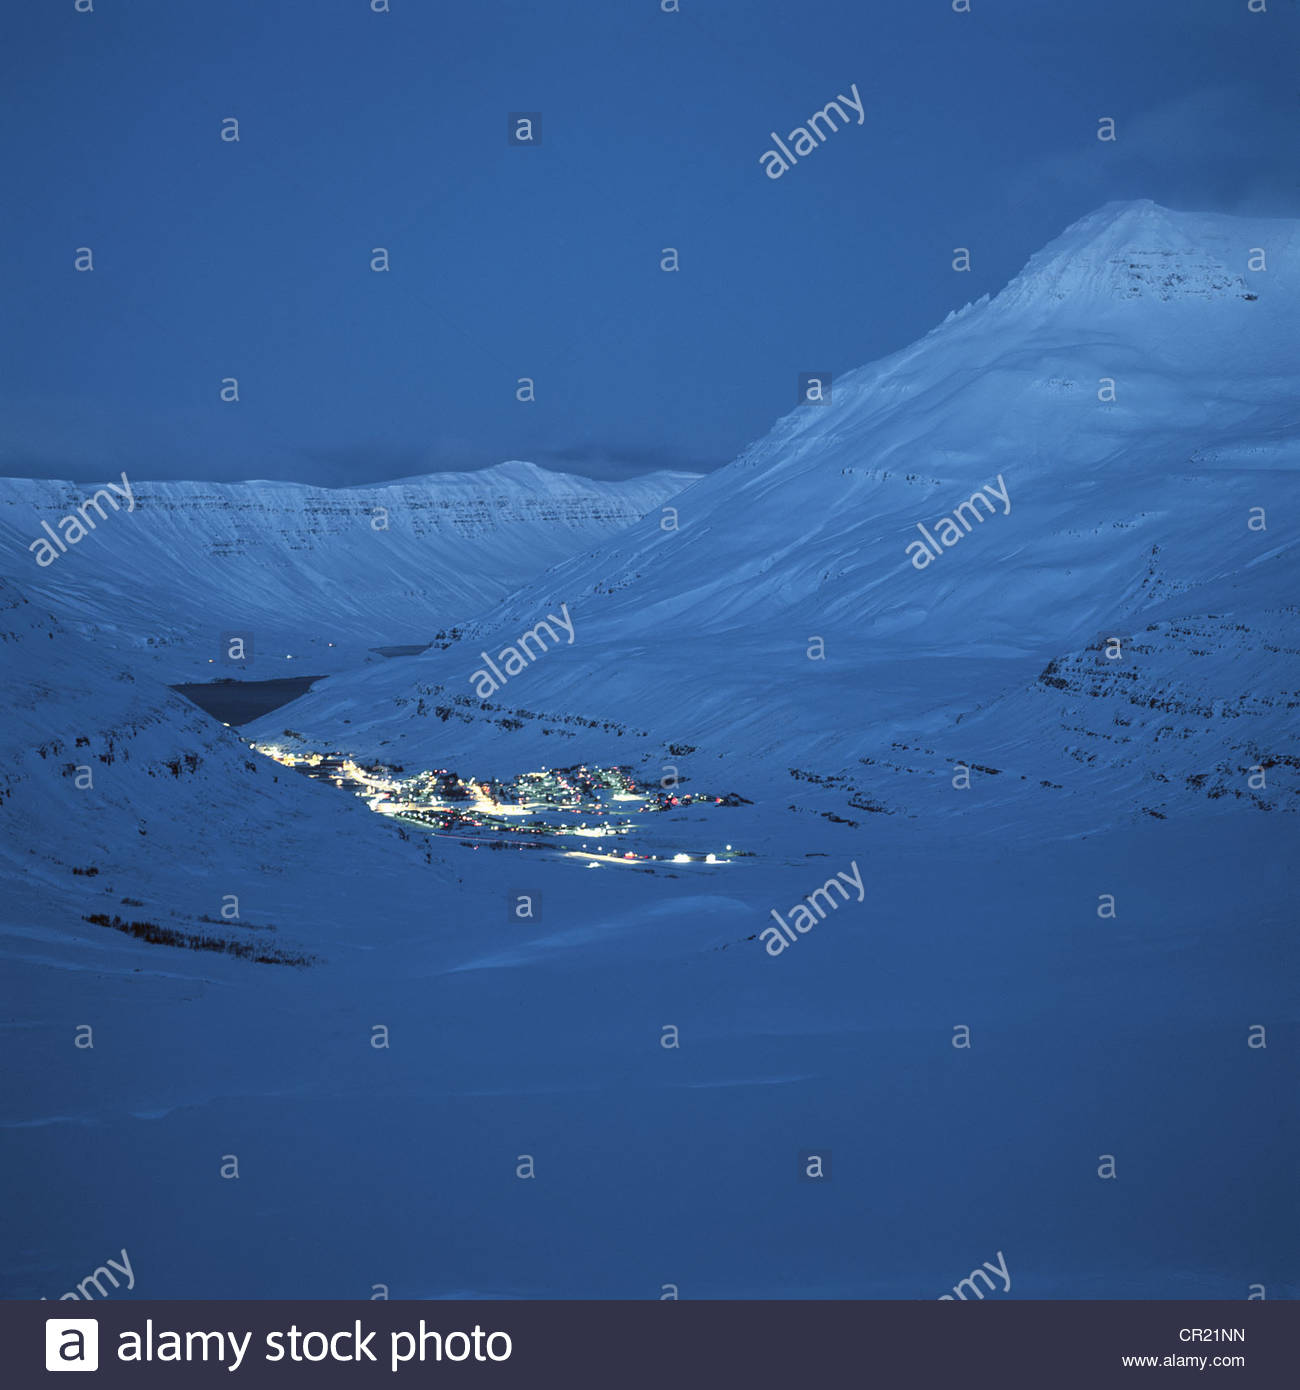 Snowy village lit up at night - Stock Image